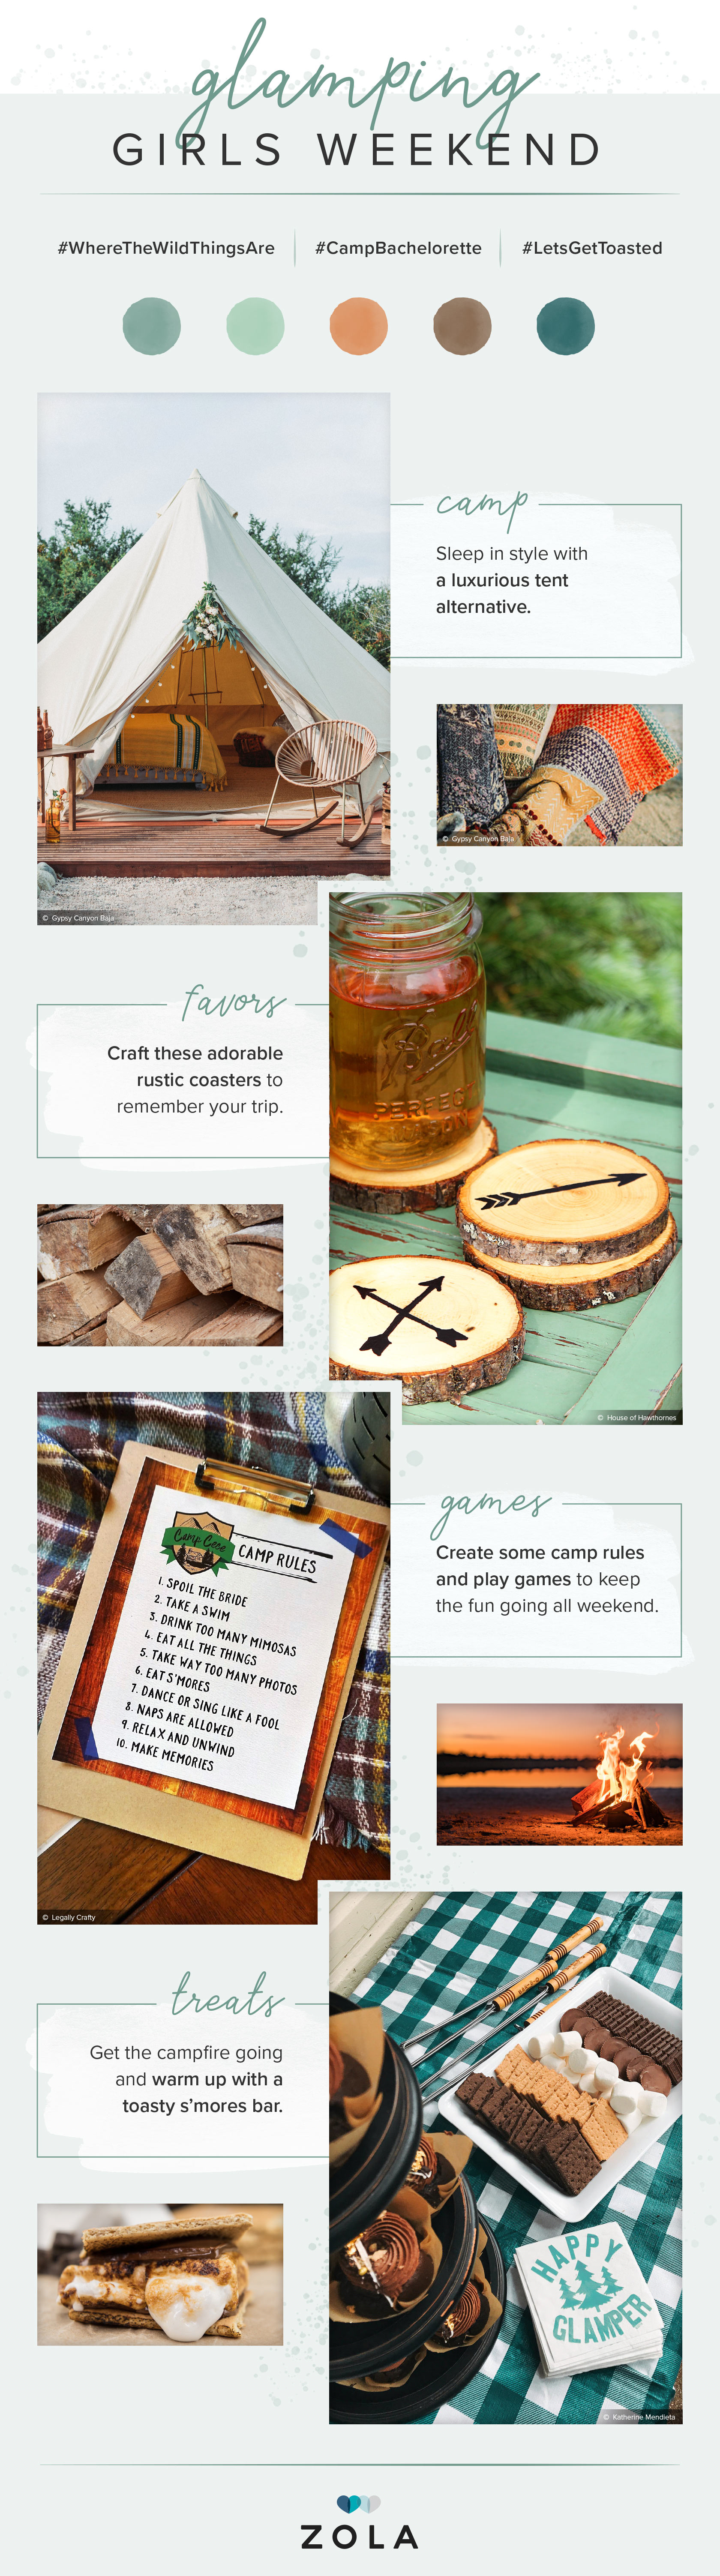 glamping and camping bachelorette party ideas.jpg